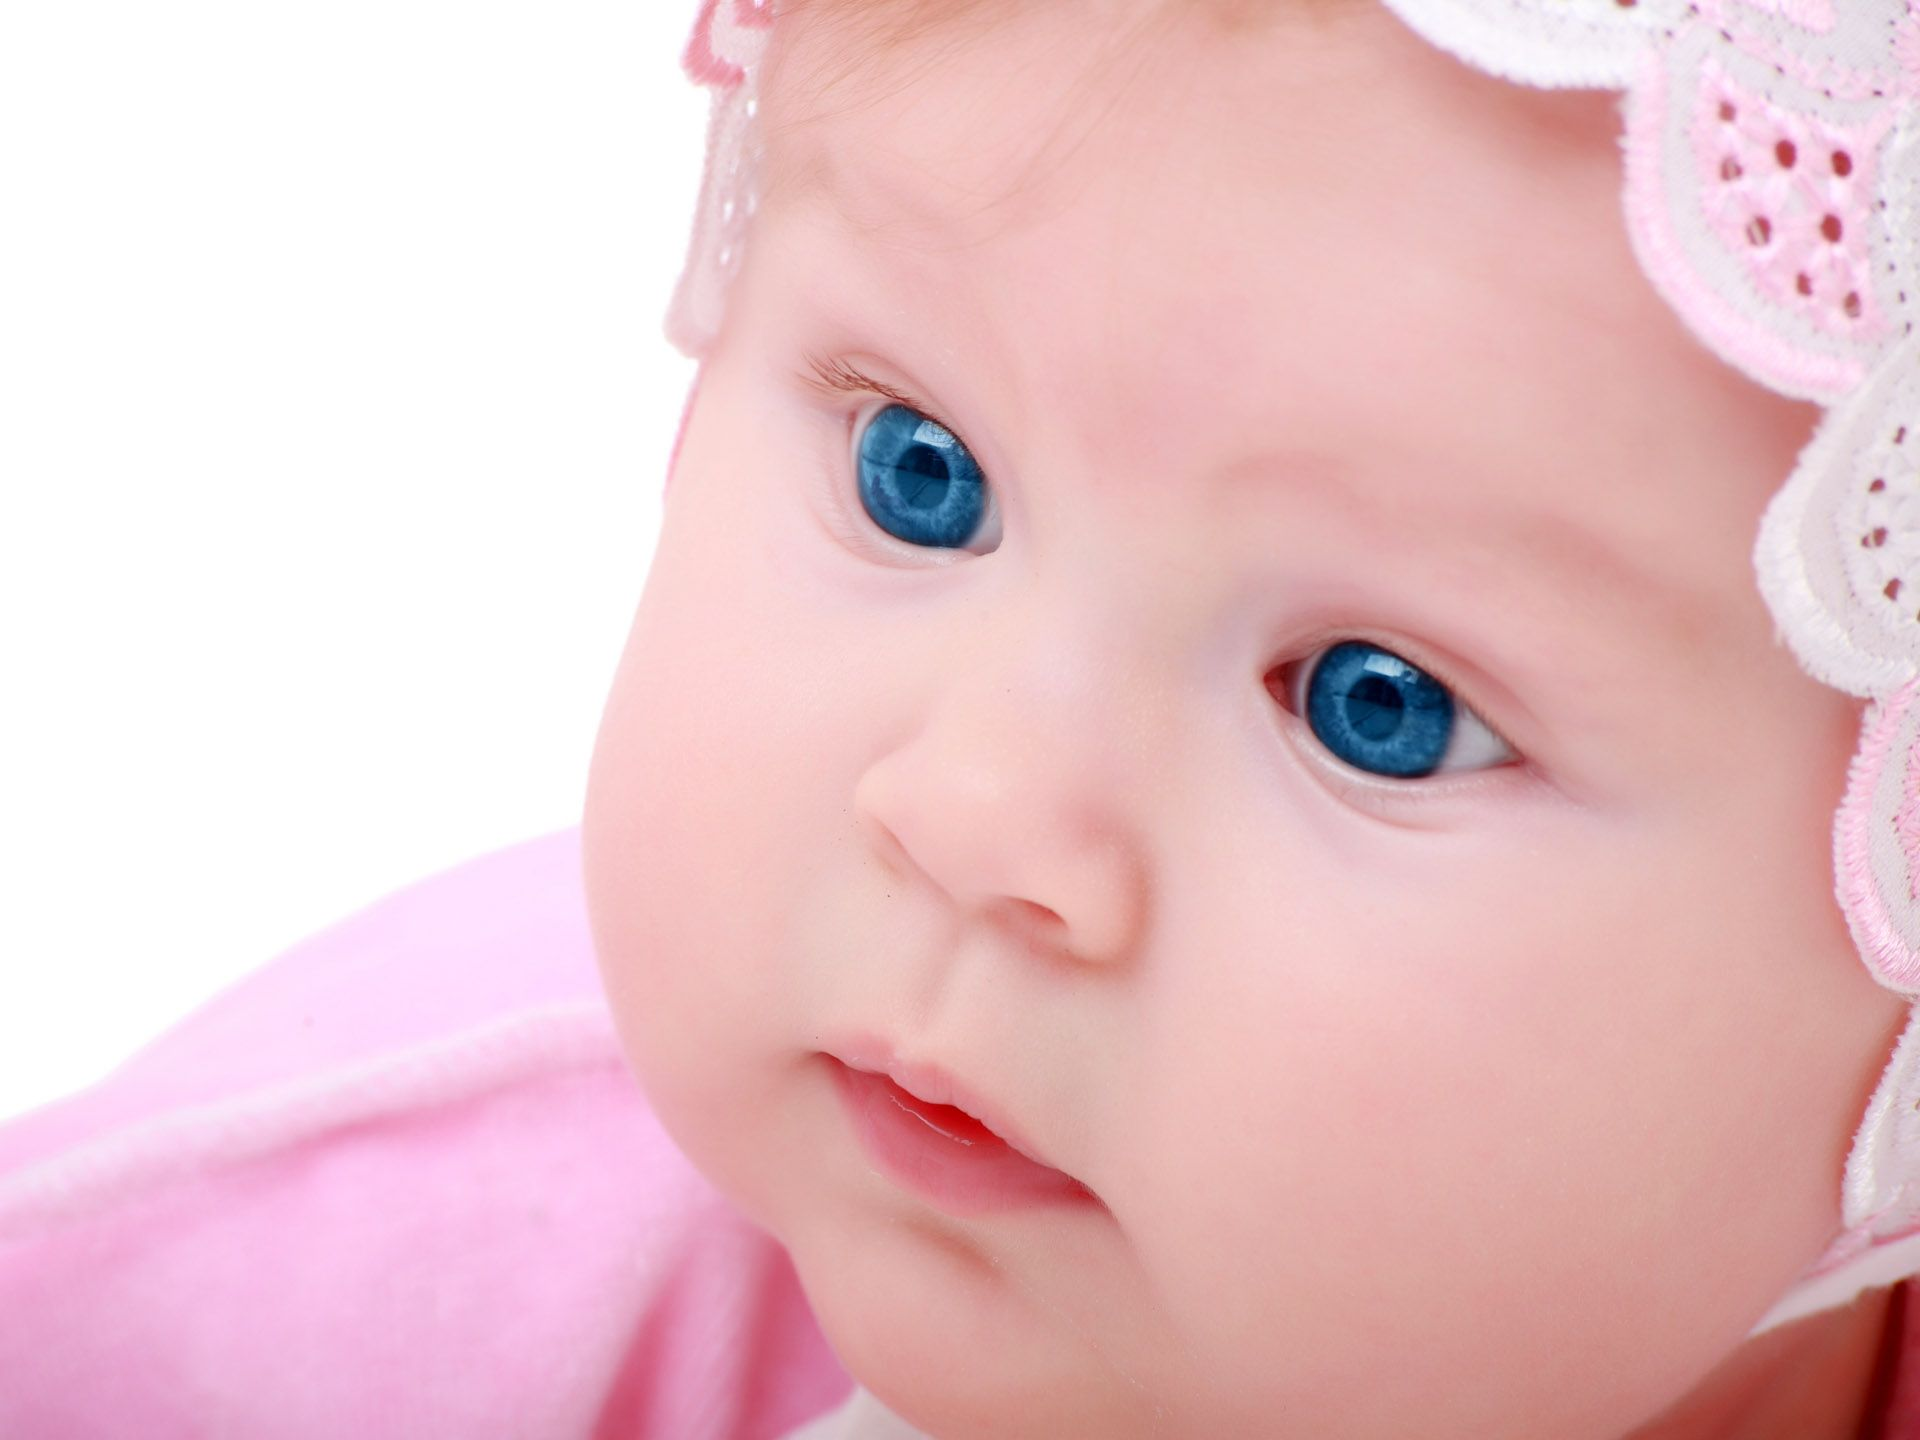 Cute Baby Wallpapers 2013 Free Download Free Wallpapers Cute Baby Wallpaper Cute Baby Shower Ideas Cute Baby Photos